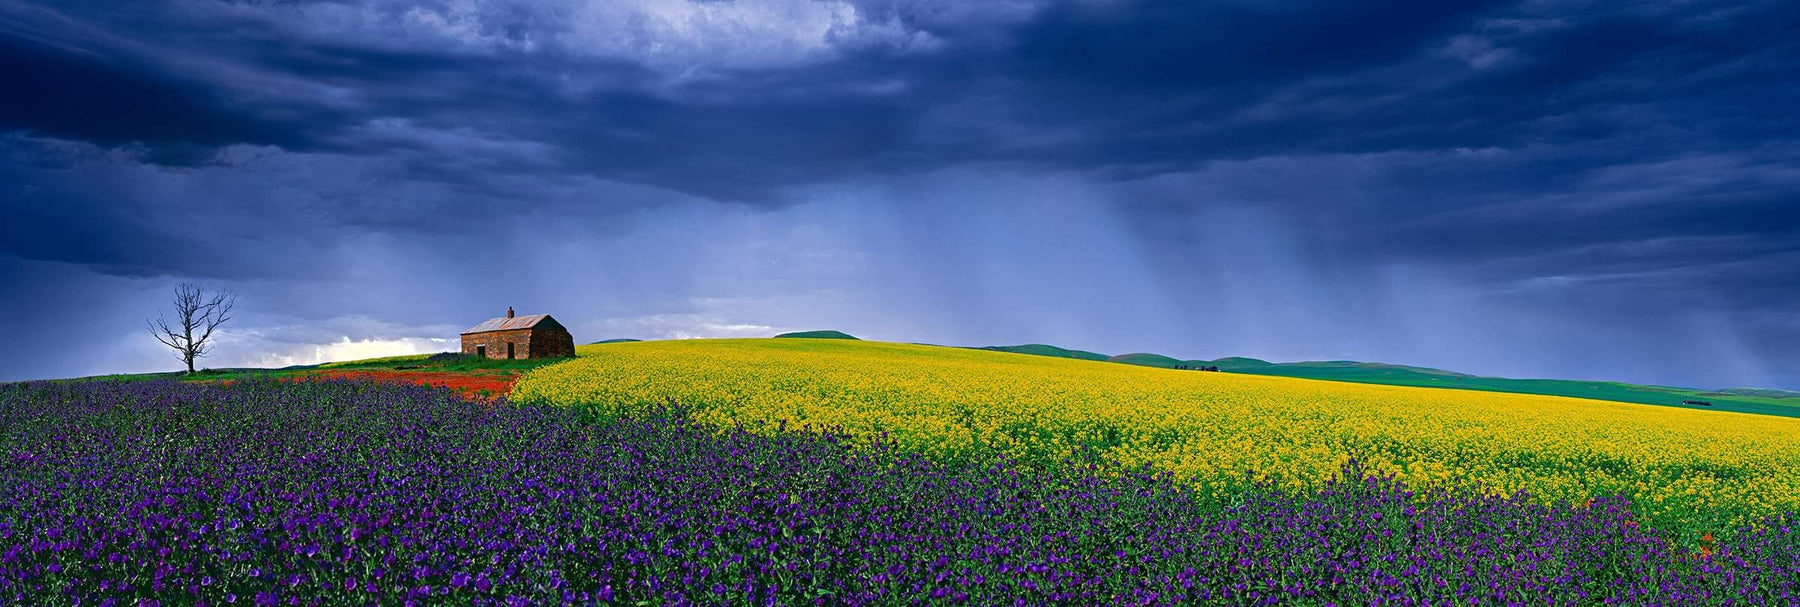 Old shack sitting in the middle of a purple and yellow flower covered field in Burra Australia